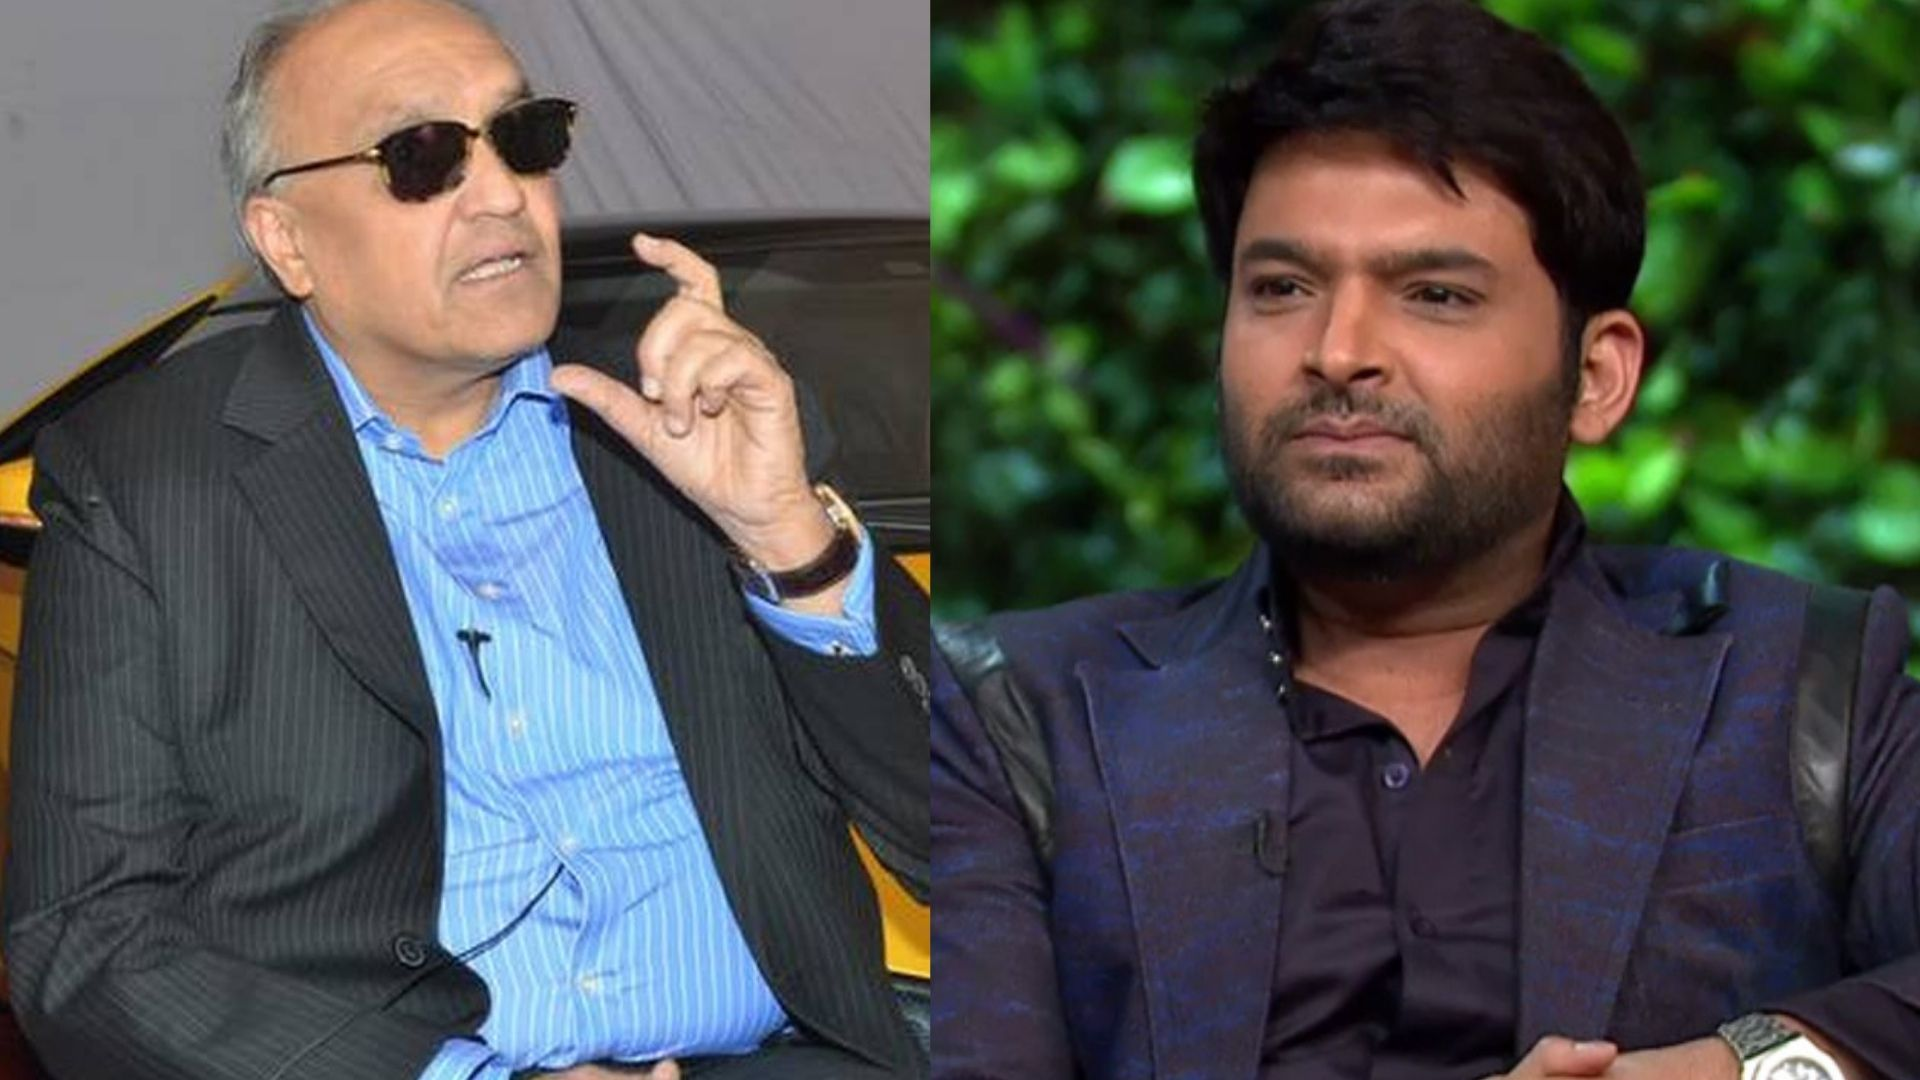 Kapil Sharma Cheating Case: Car Designer Dilip Chhabria's Son Bonito Chhabria Arrested By The Police